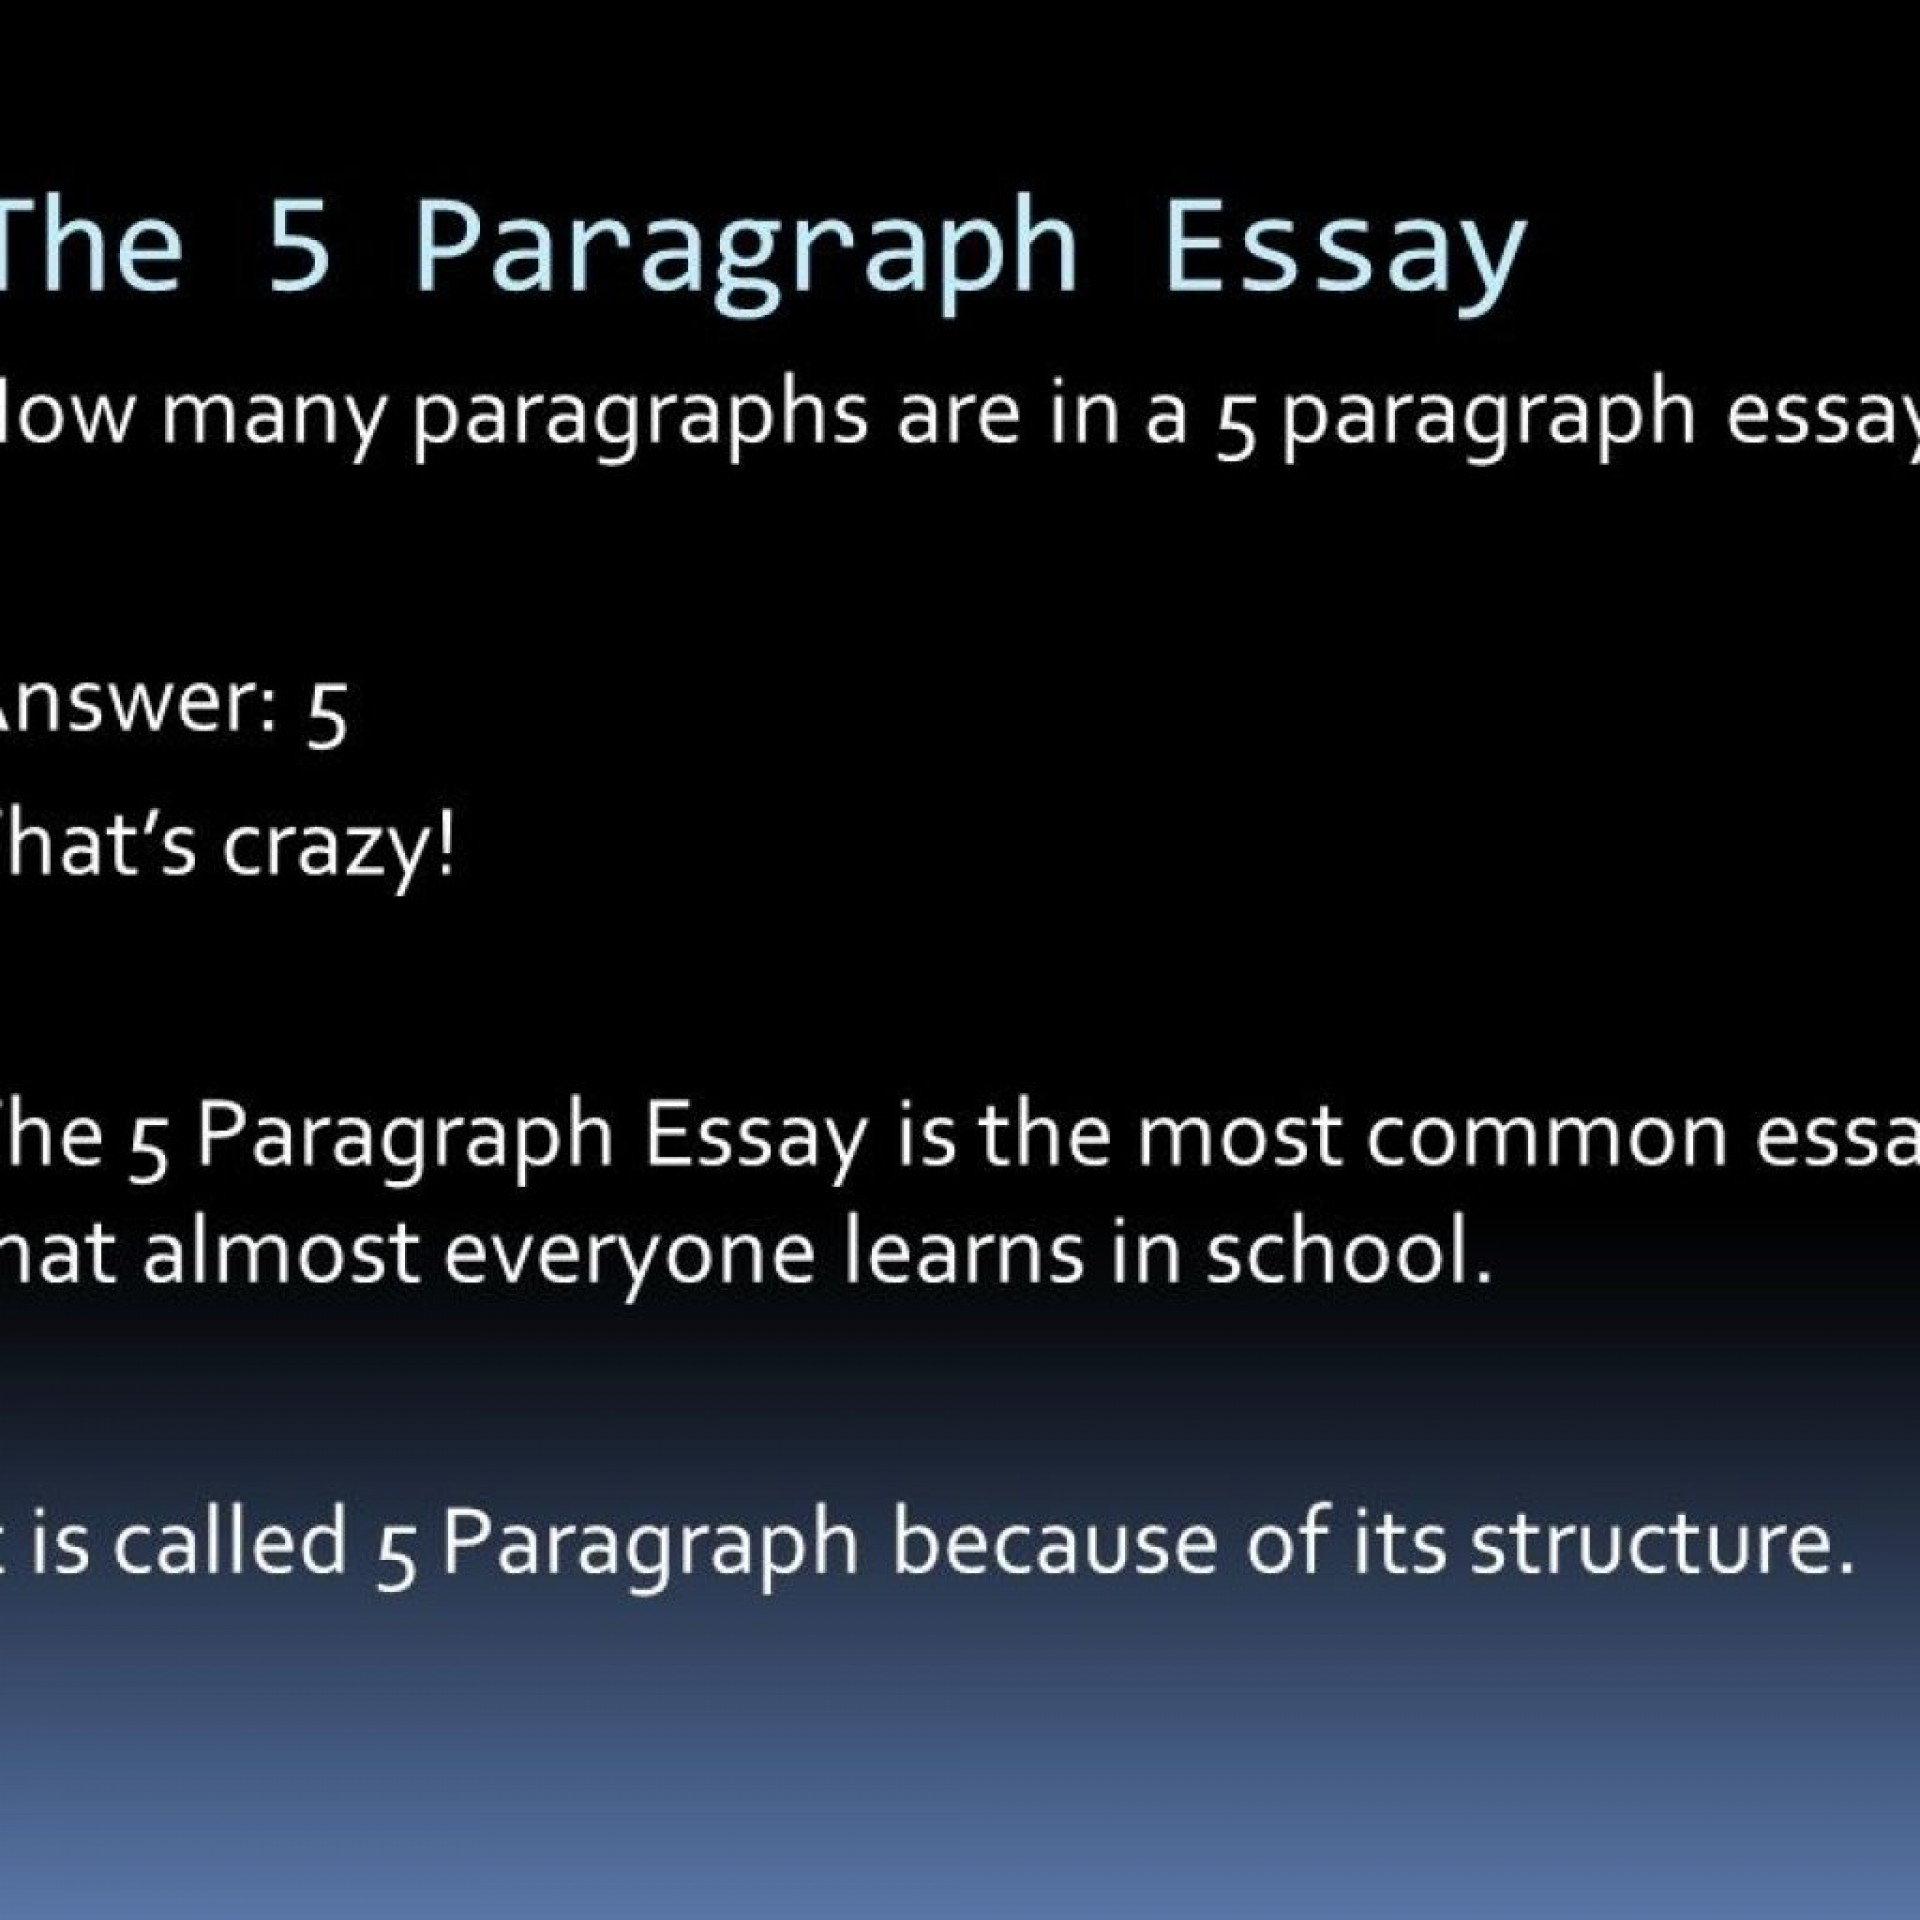 002 How Many Sentences Are In Paragraph For An Essay 2867177336 Is Wondrous A College 5 Each Of 1920